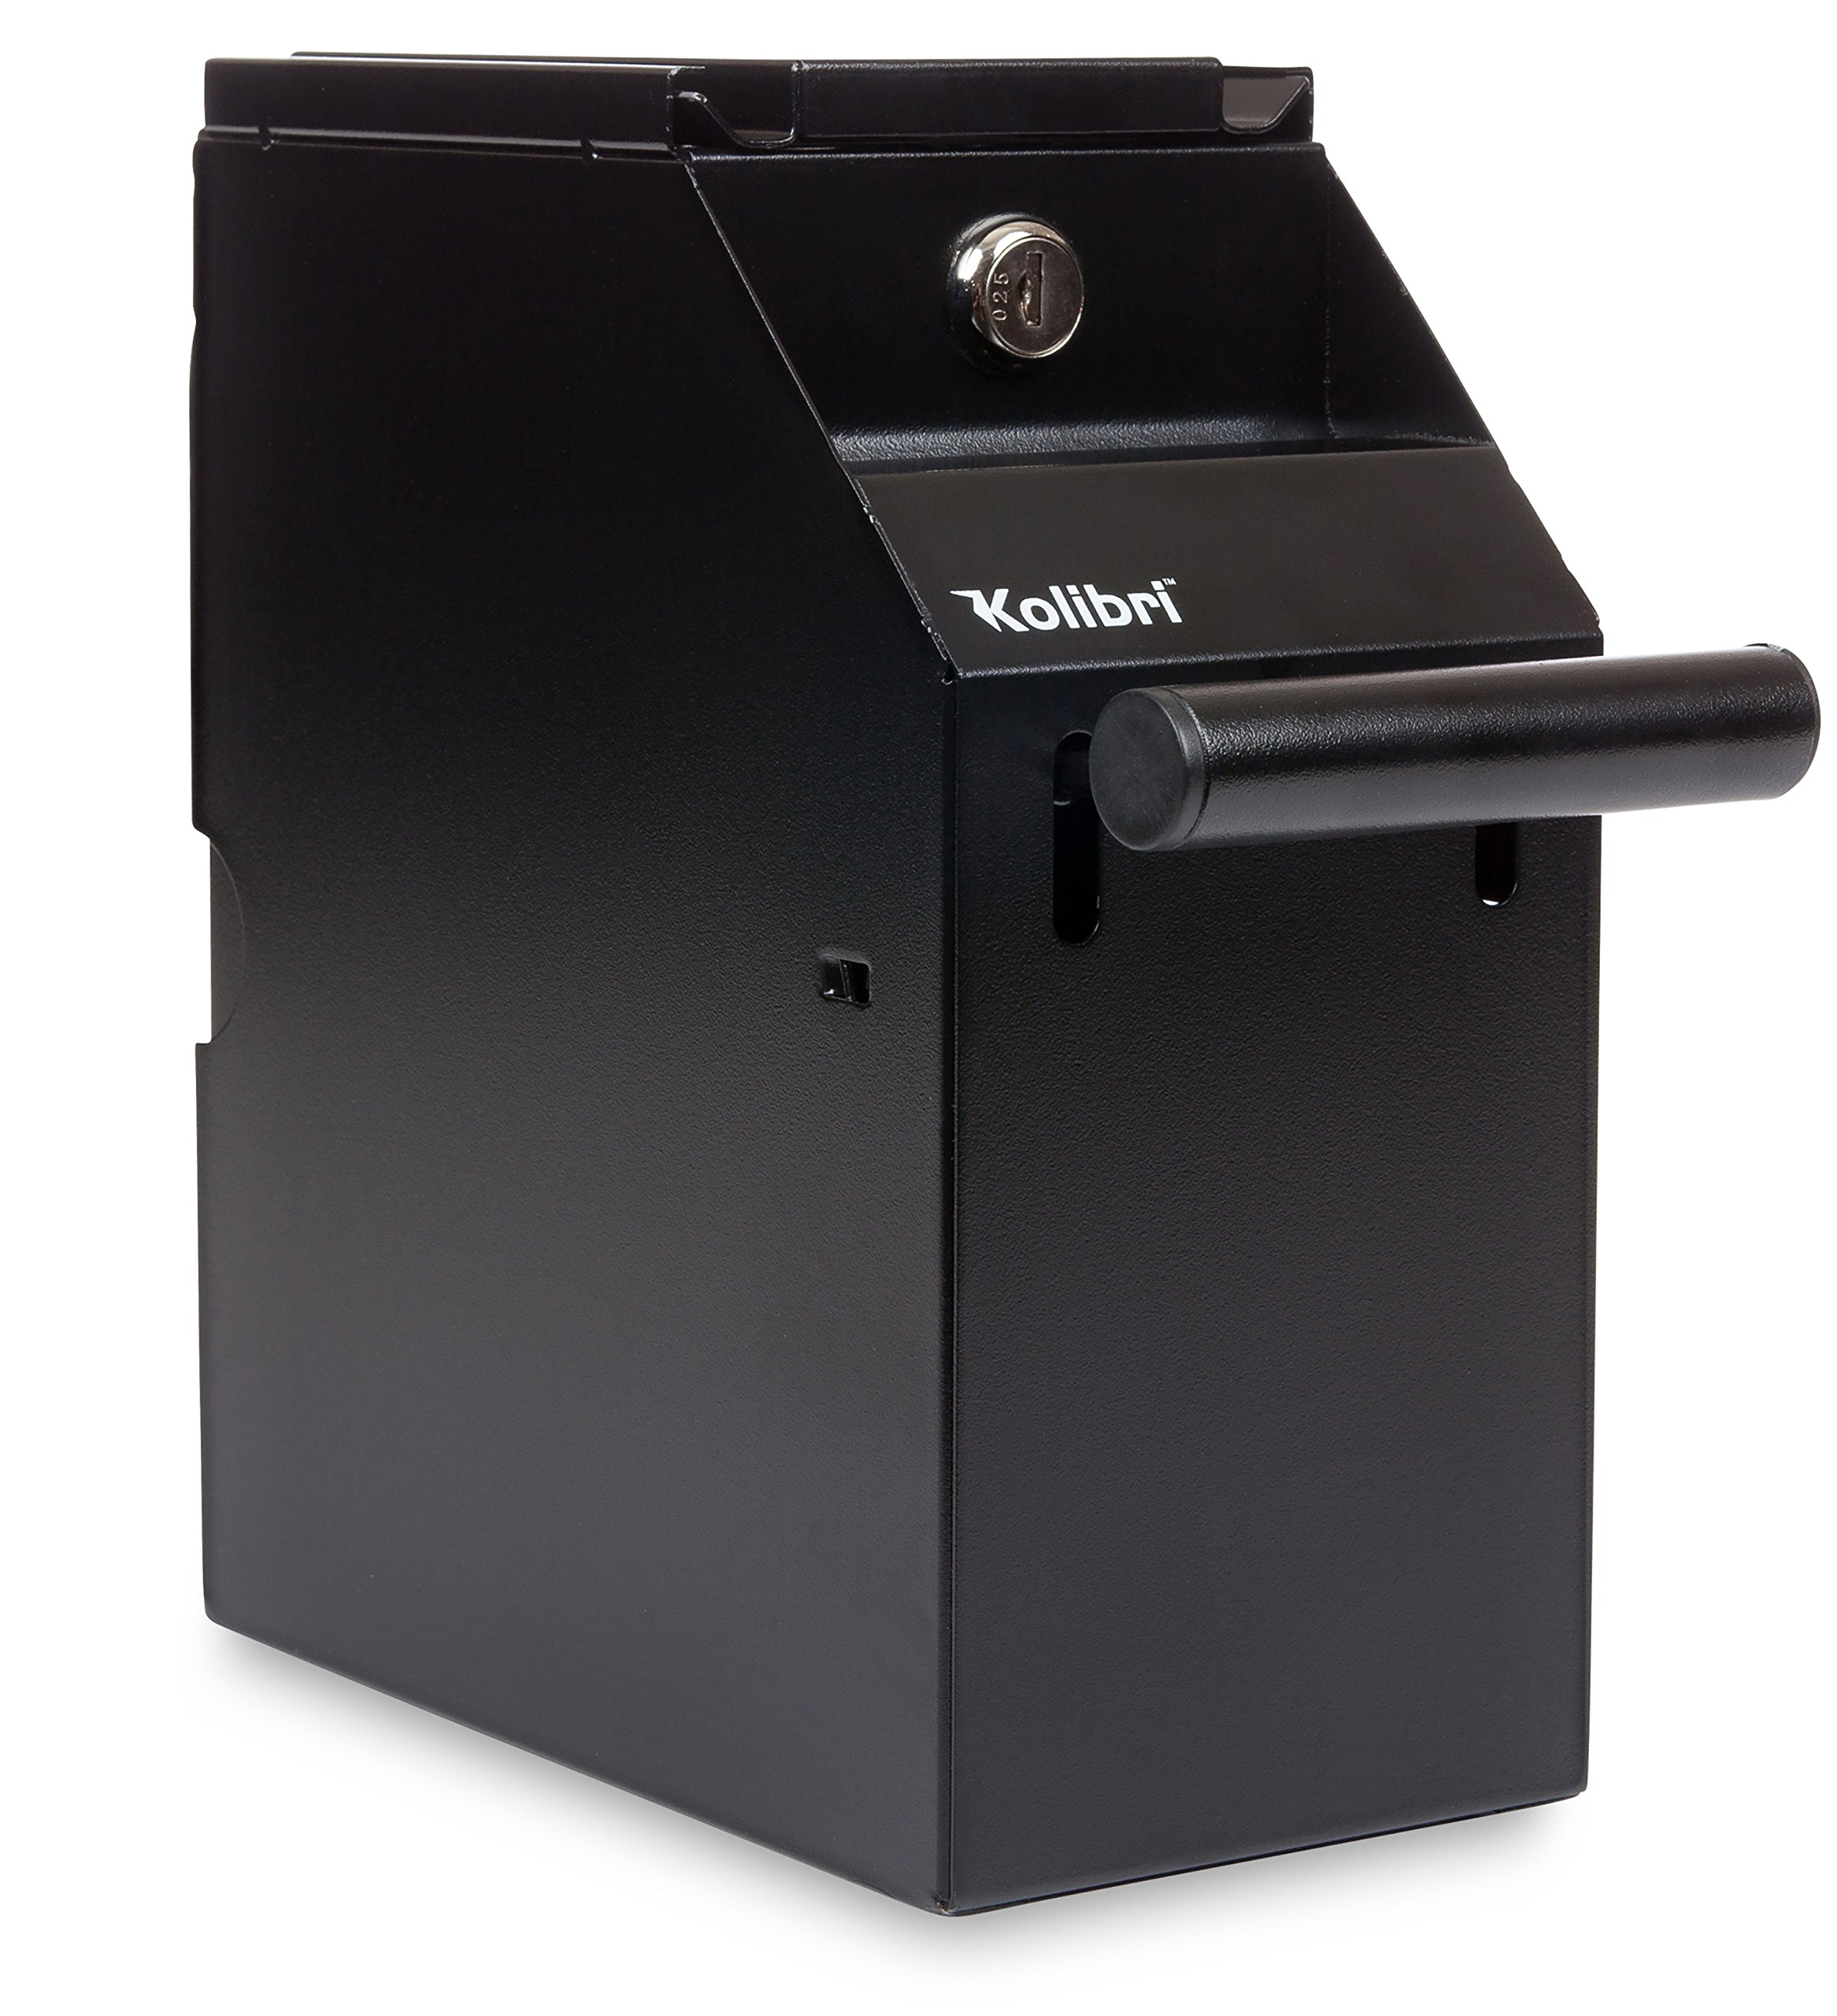 Kolibri Point-of-Sale Drop Safe with All-Steel Construction, Installs Under Counter